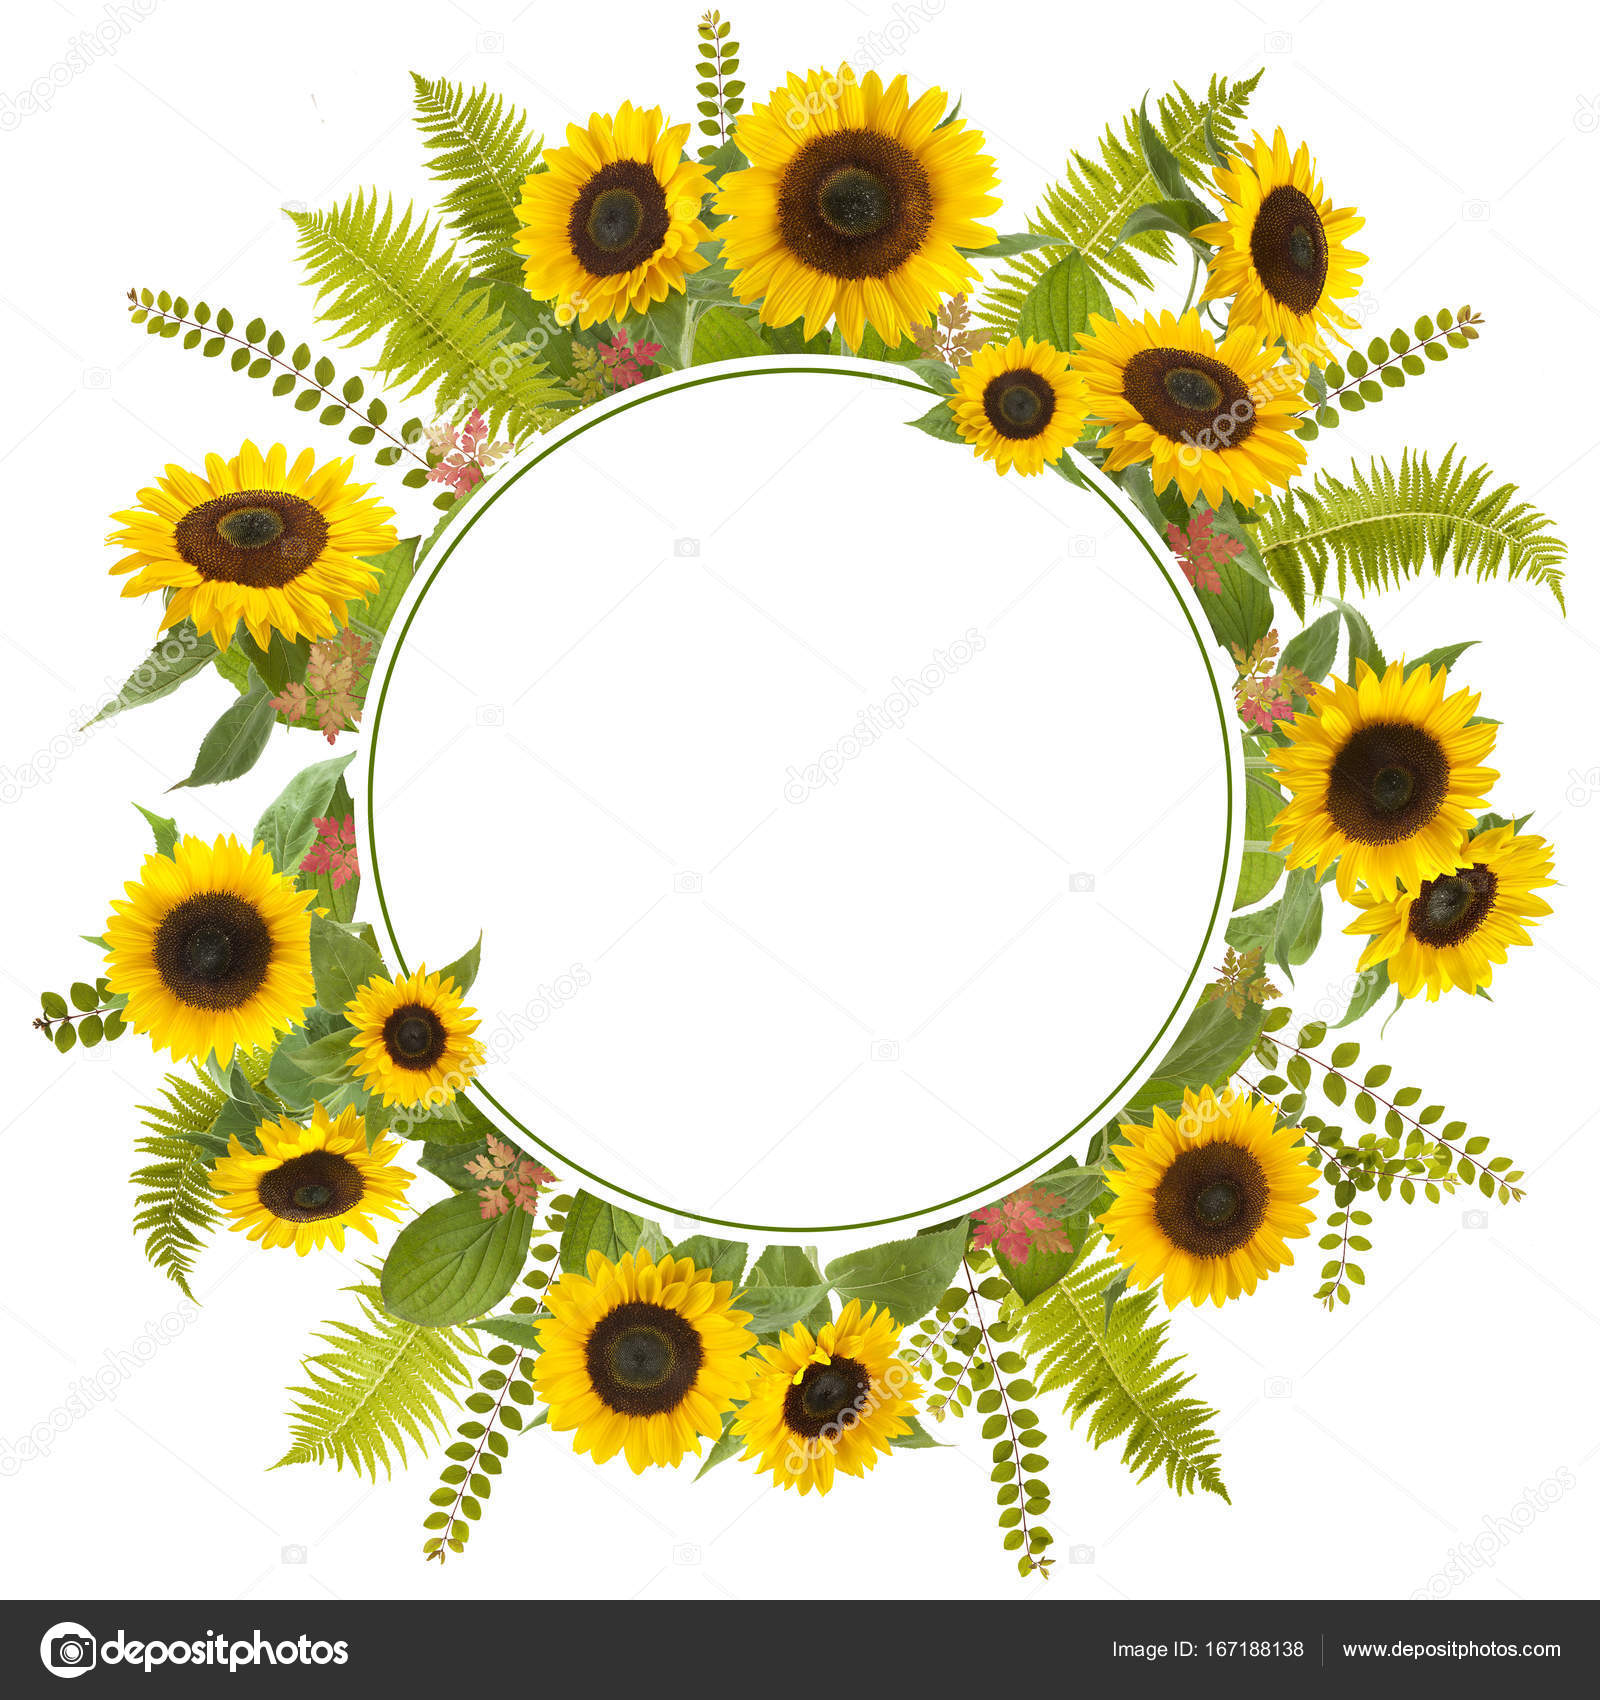 sunflower background image images wallpaper and free